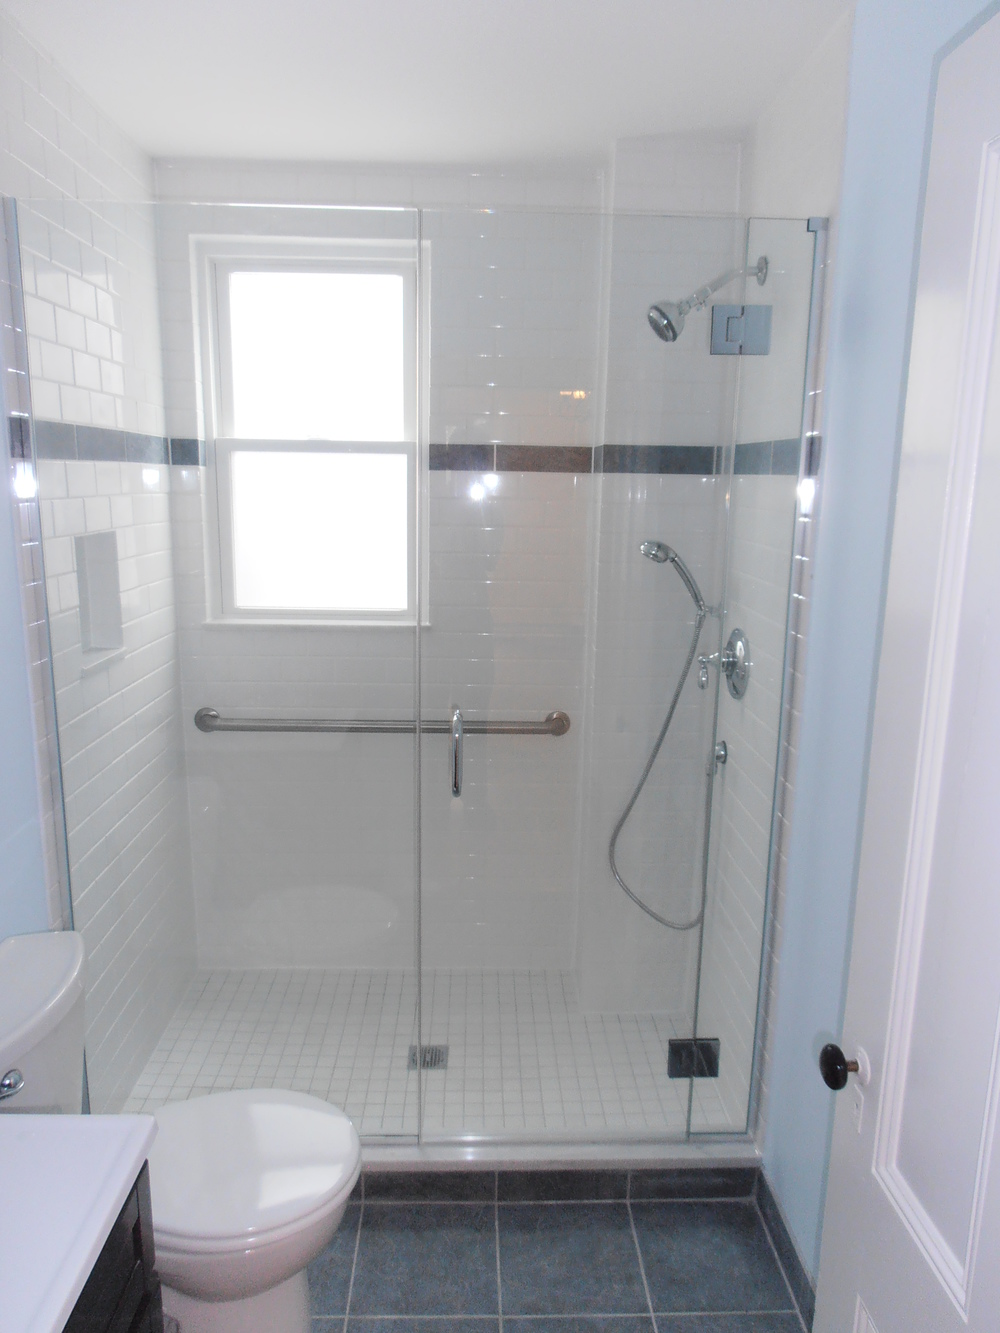 1 Simple Large Ease-to-Use Shower Roslindale Cashman.JPG